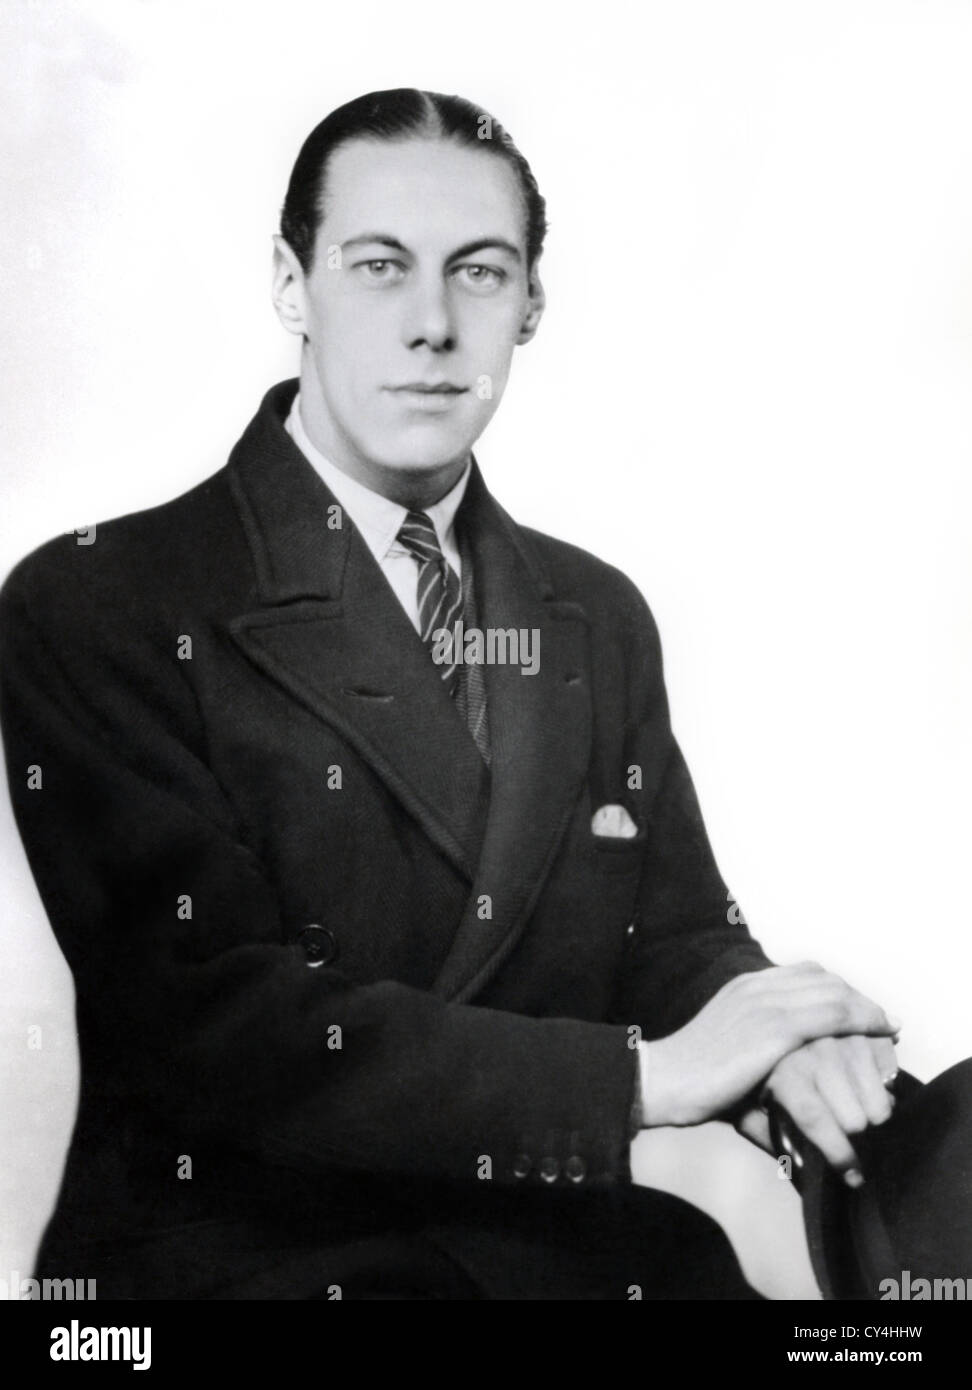 REX HARRISON, SIR (PORTRAIT) AGED 22 RXHS 004 MOVIESTORE COLLECTION LTD - Stock Image